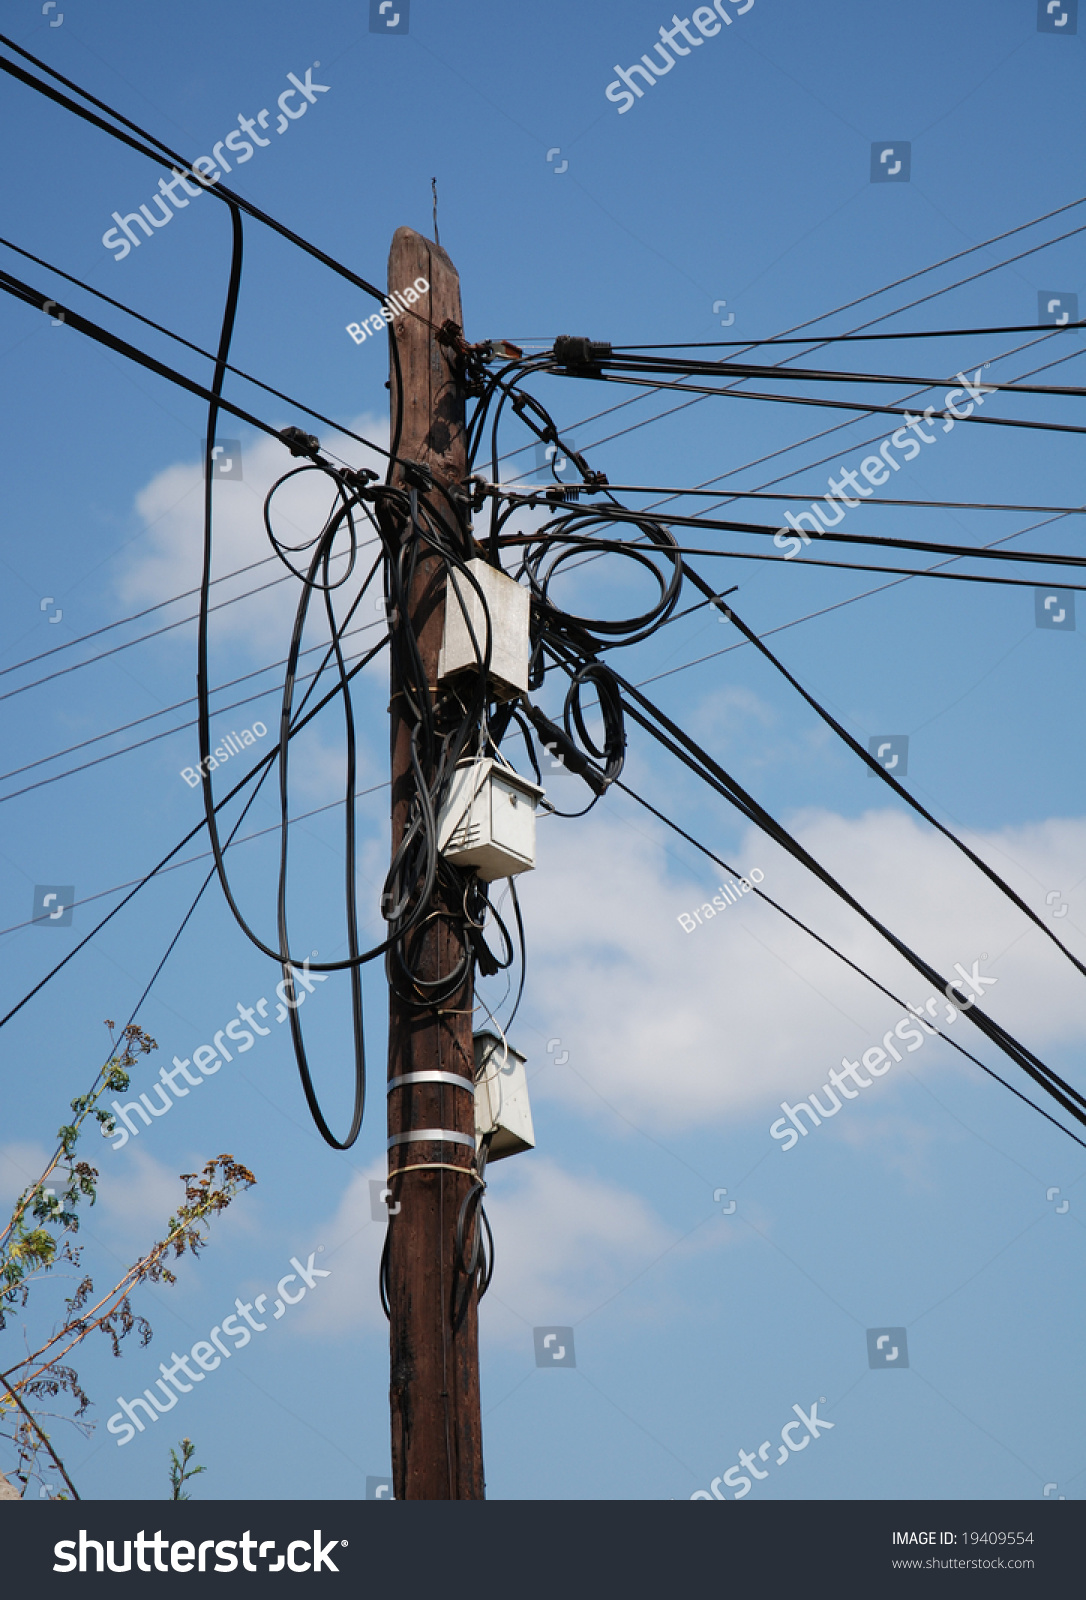 An Old Electric Pole With Cables And Wires Symbol Of Communication Electrical Wiring Internet Ez Canvas